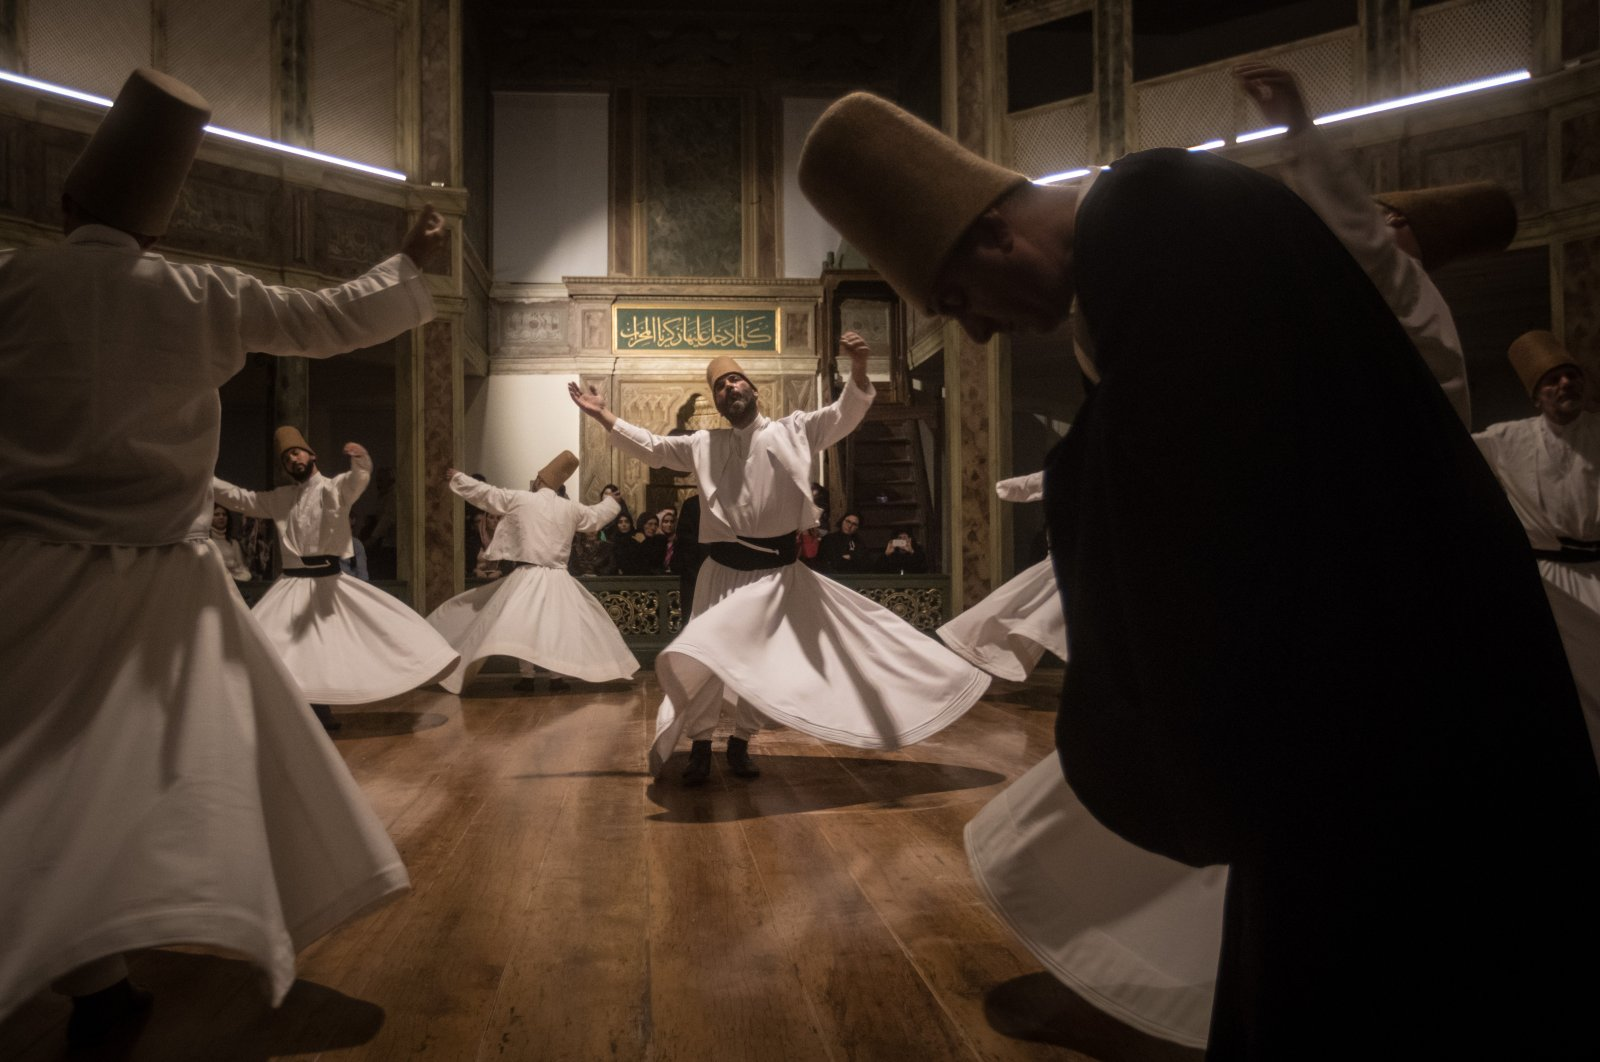 Whirling Dervishes take part in a Sama ceremony marking the anniversary of the death of Mevlana Jalaluddin Rumi, Istanbul, Turkey, Dec. 17, 2017. (Getty Images Photo)